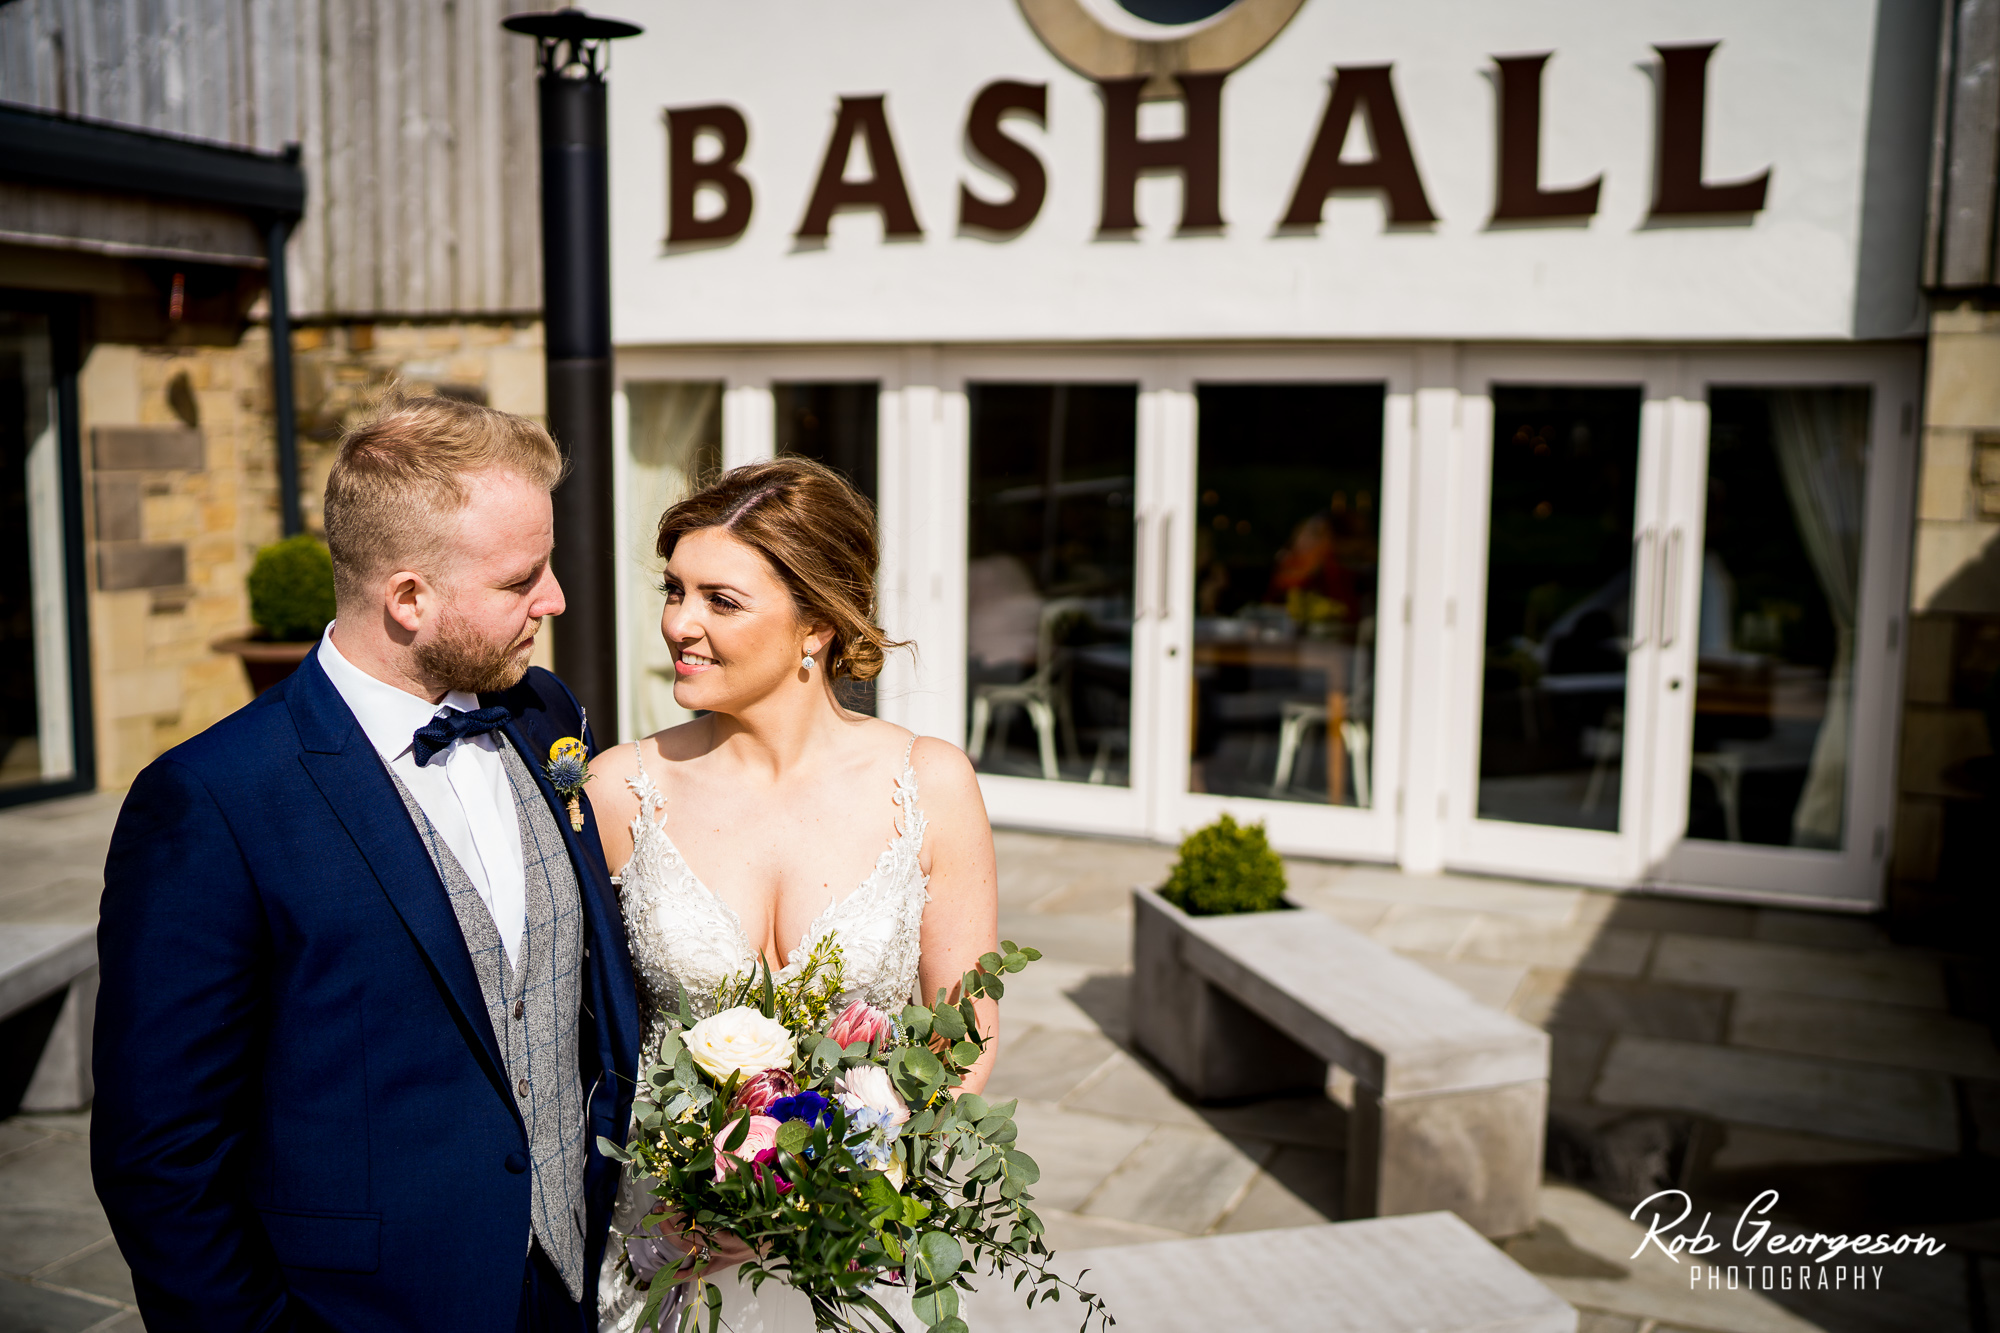 Bride and Groom at the main entrance to Bashall Barn